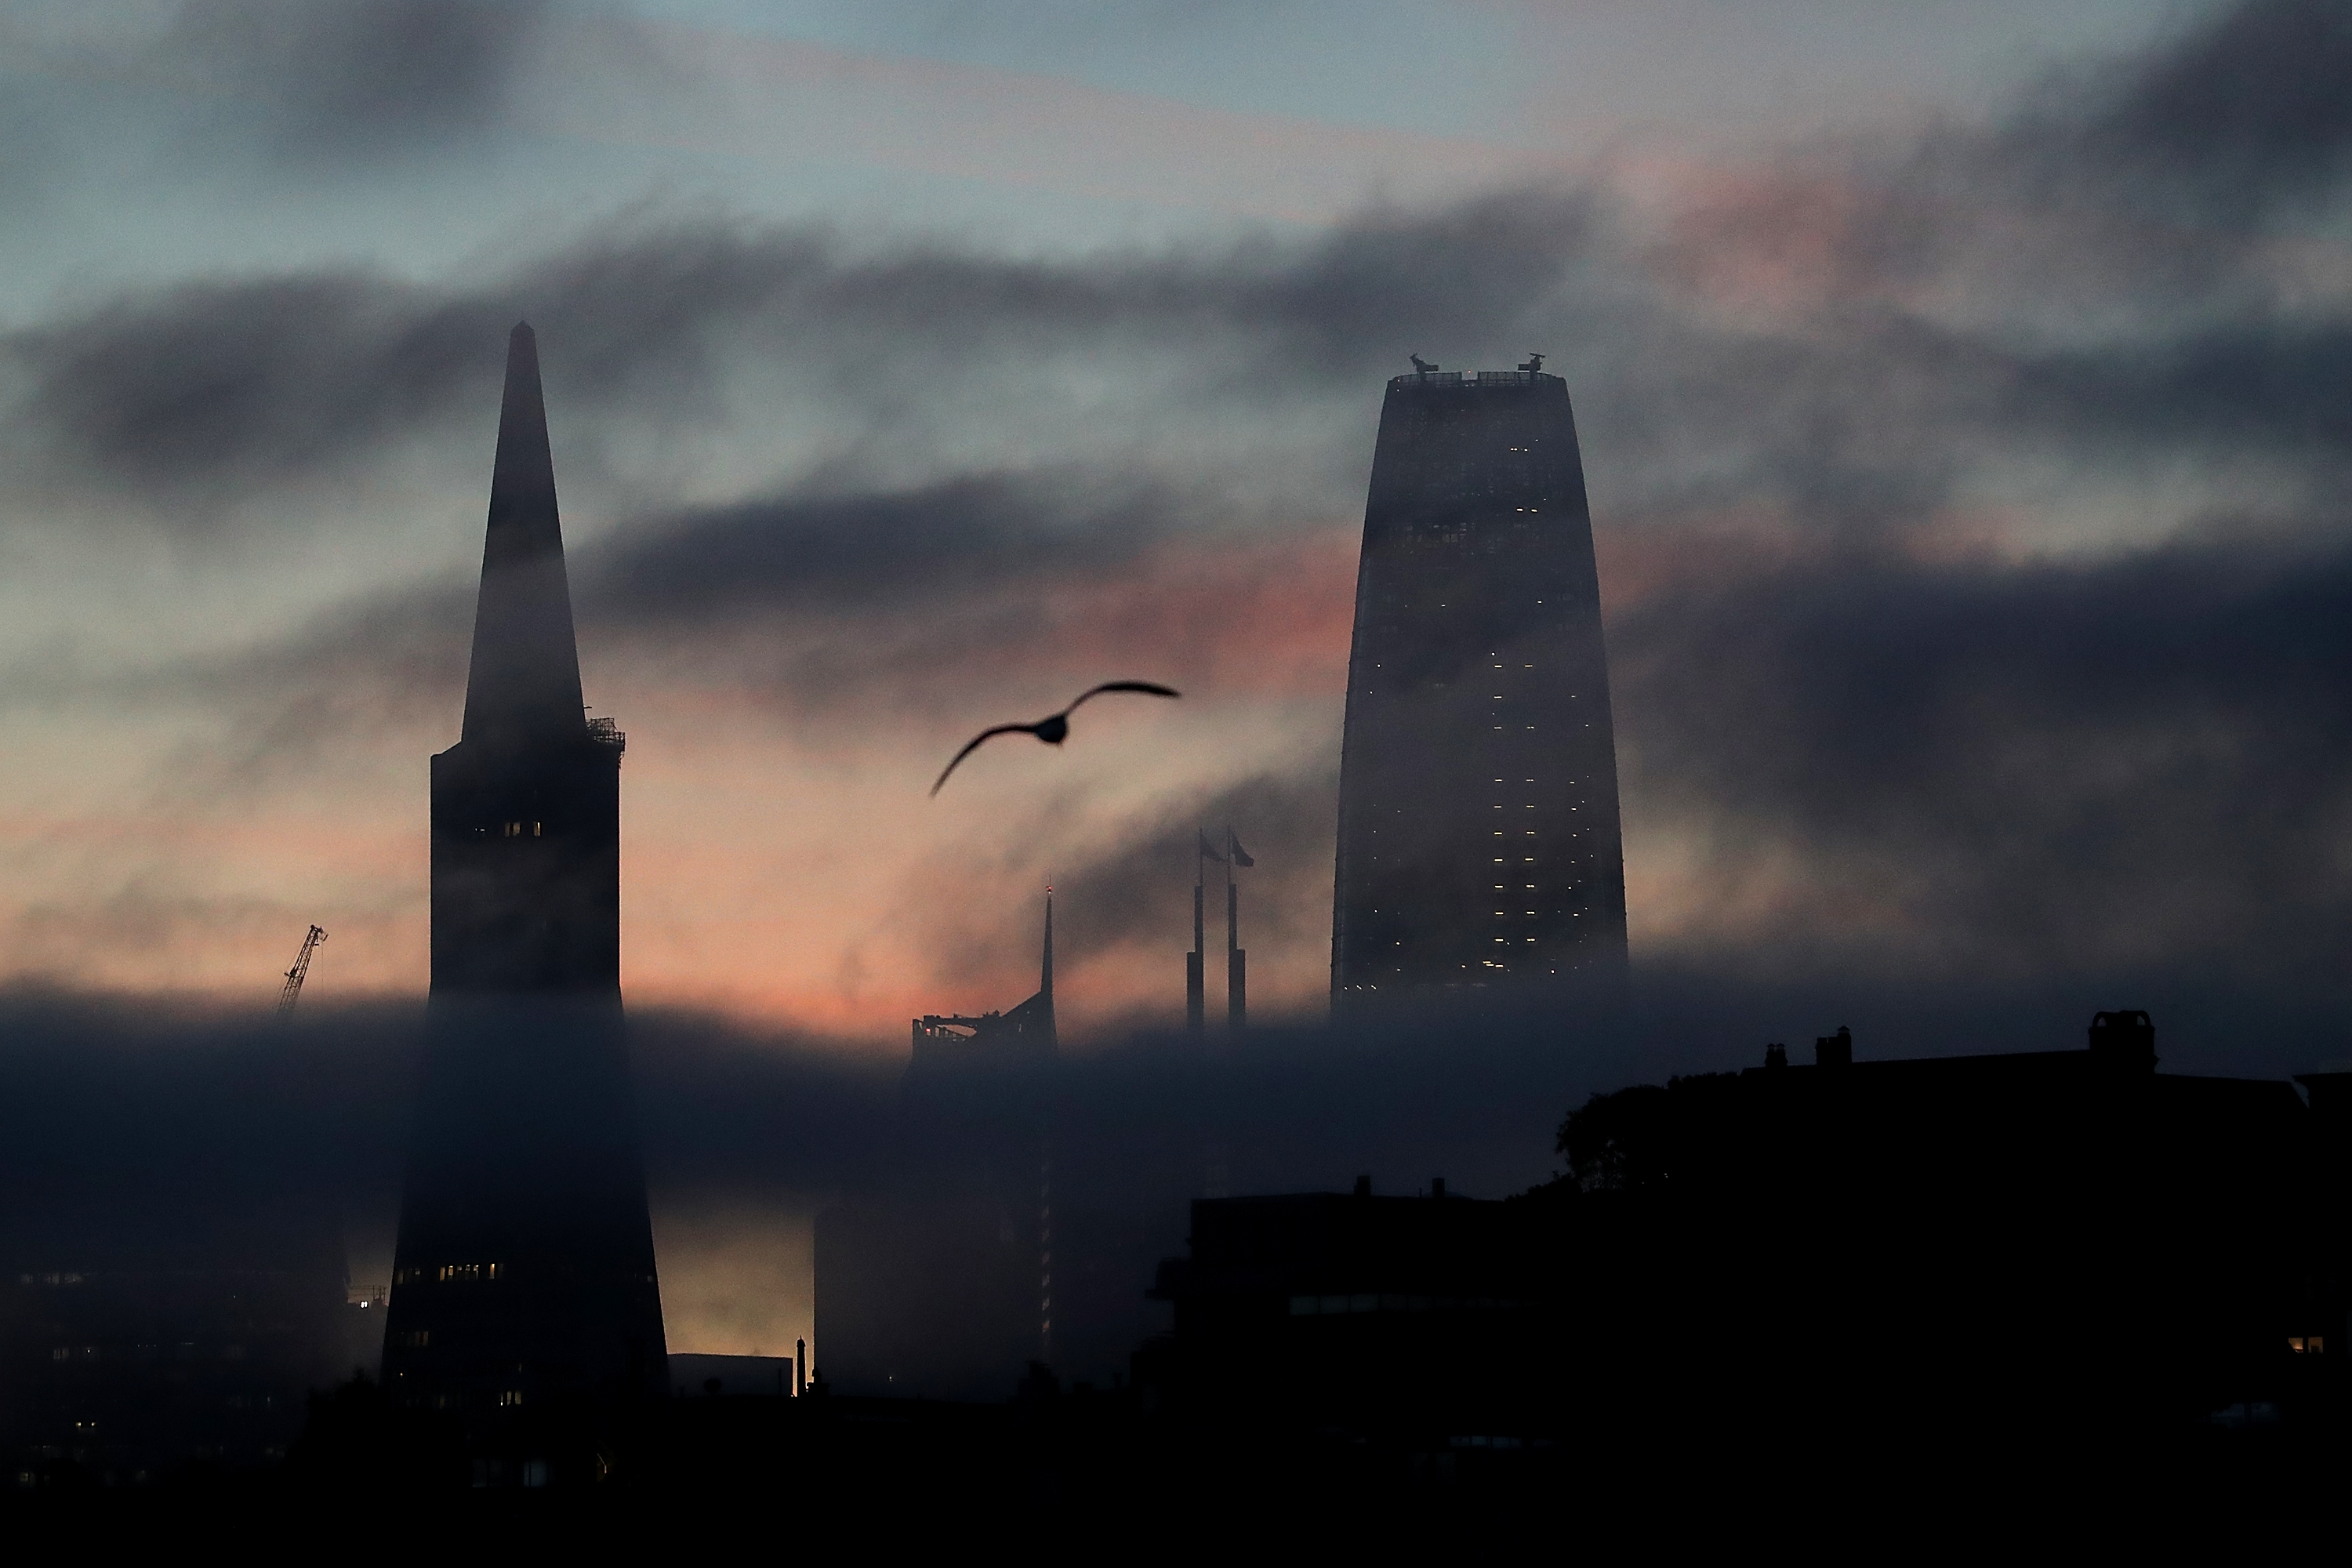 San Francisco Skyline through very dark fog, with the tops of Salesforce Tower and the Transamerica Pyramid visible.